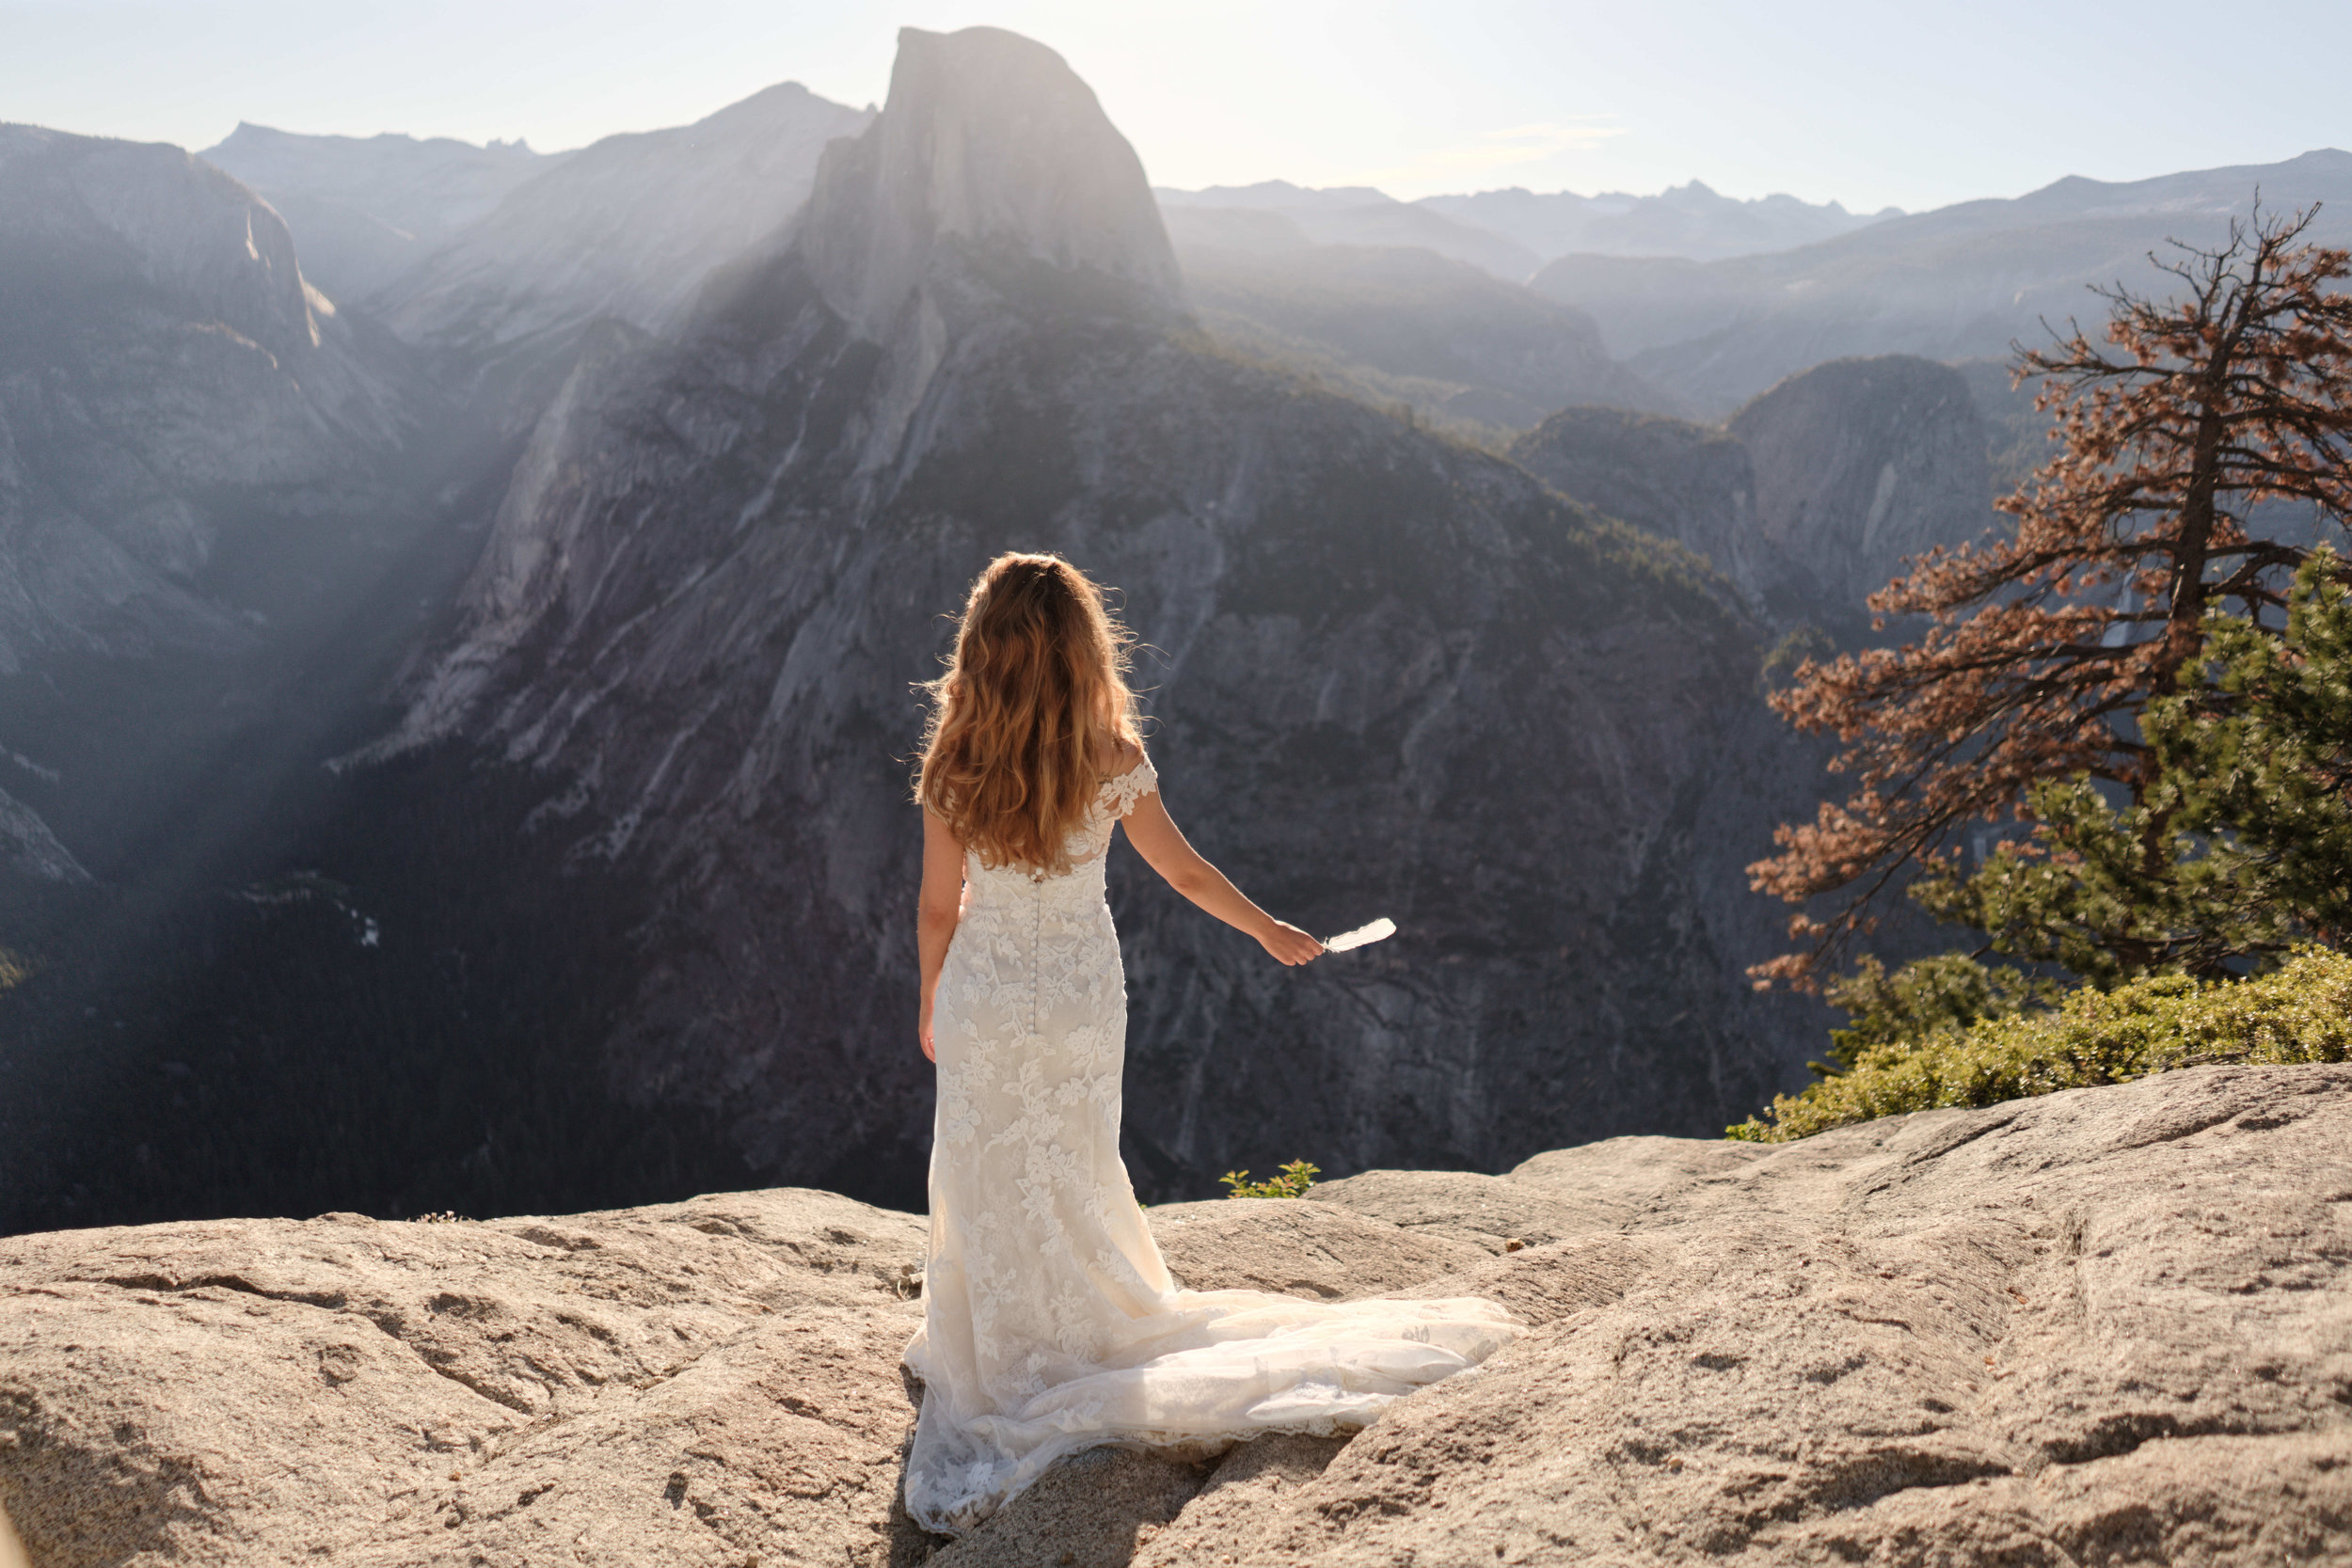 yosemite-adventure-wedding-amyjames (97).jpg